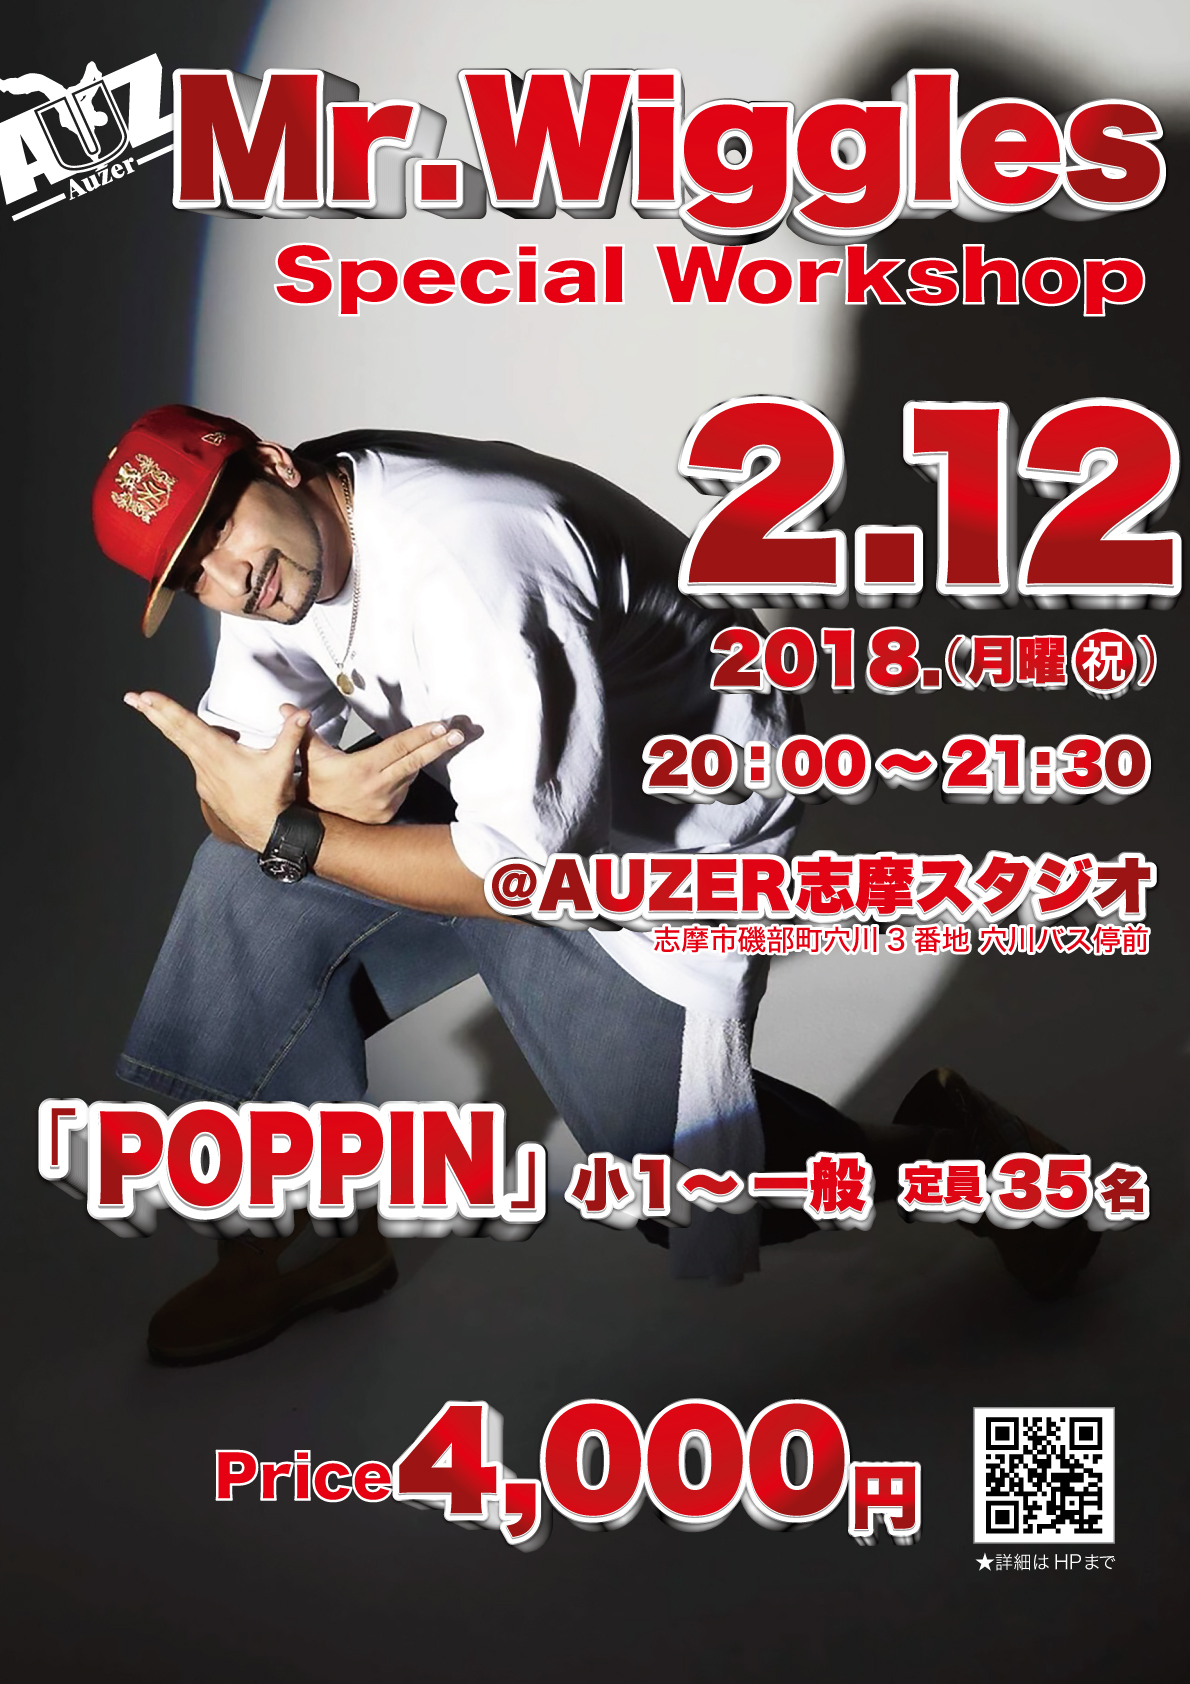 MR.WIGGLES Special Workshop 20180212